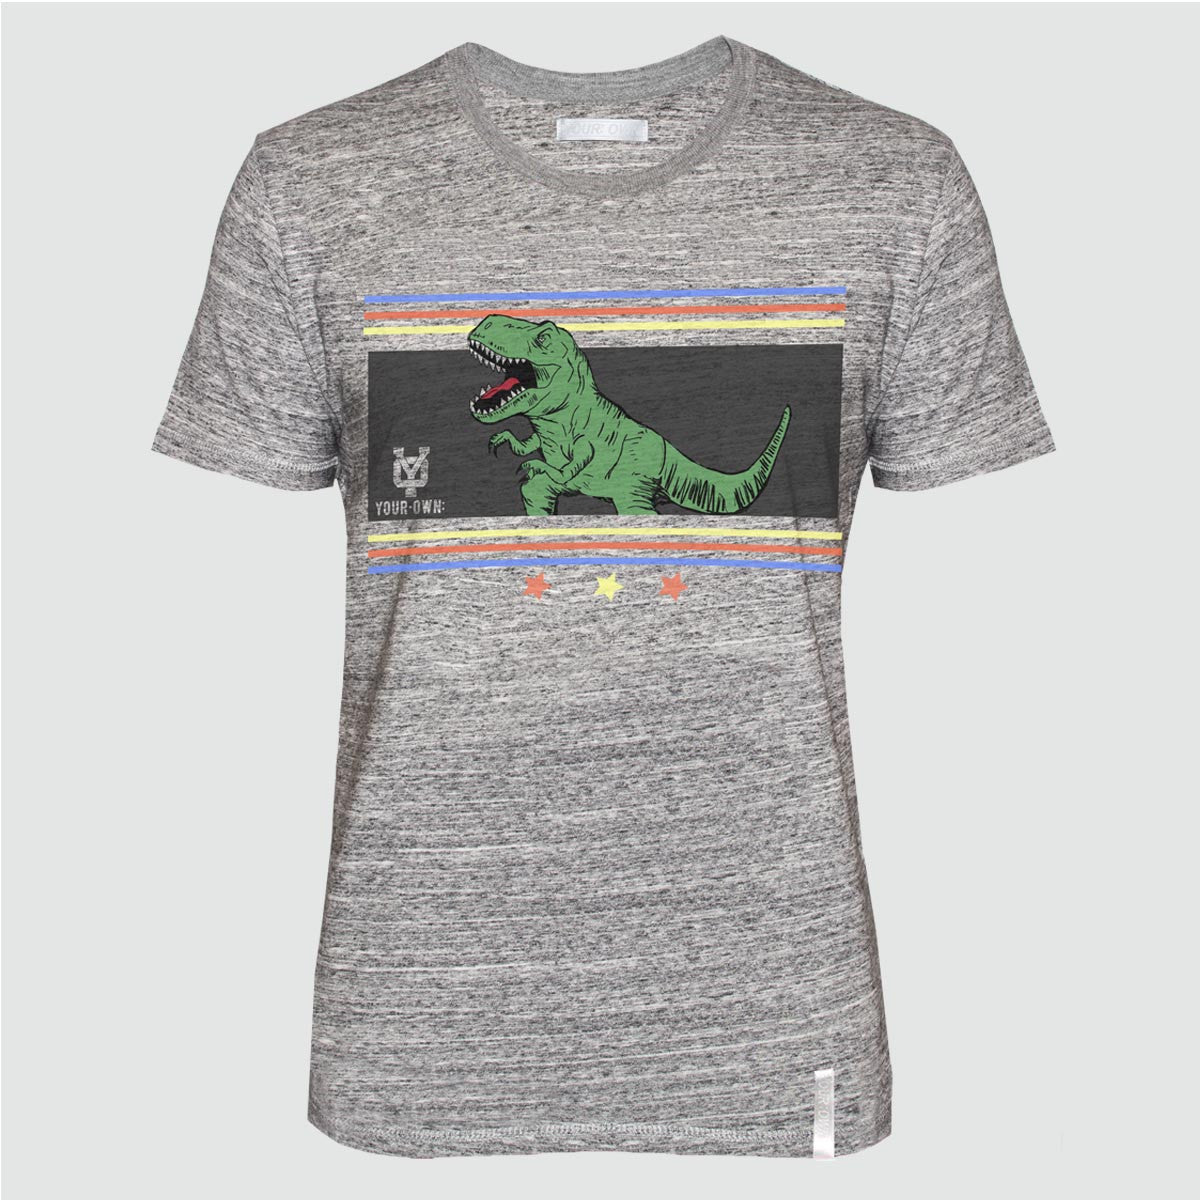 YO 'OLIVERES' T SHIRT GREY MARL